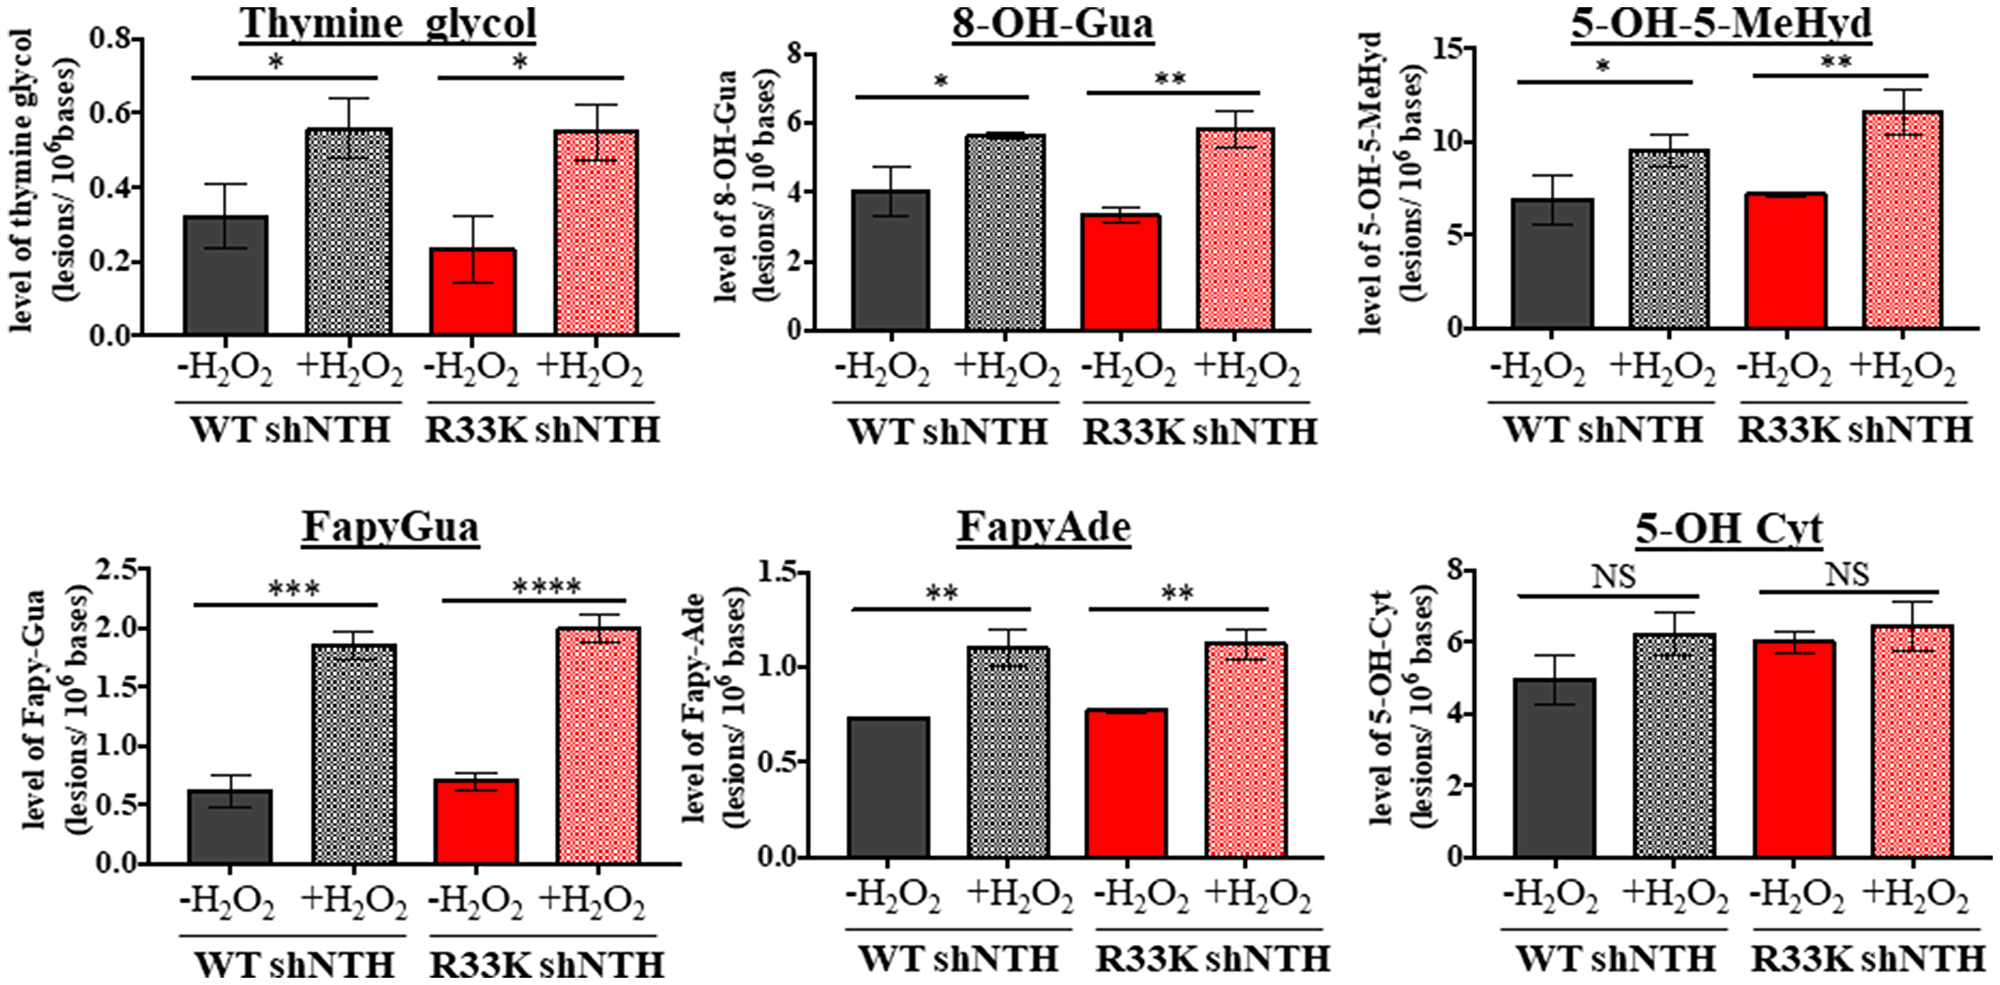 Wt- and R33K-NTHL1 exhibit similar substrate specificity and repair kinetics in vivo.